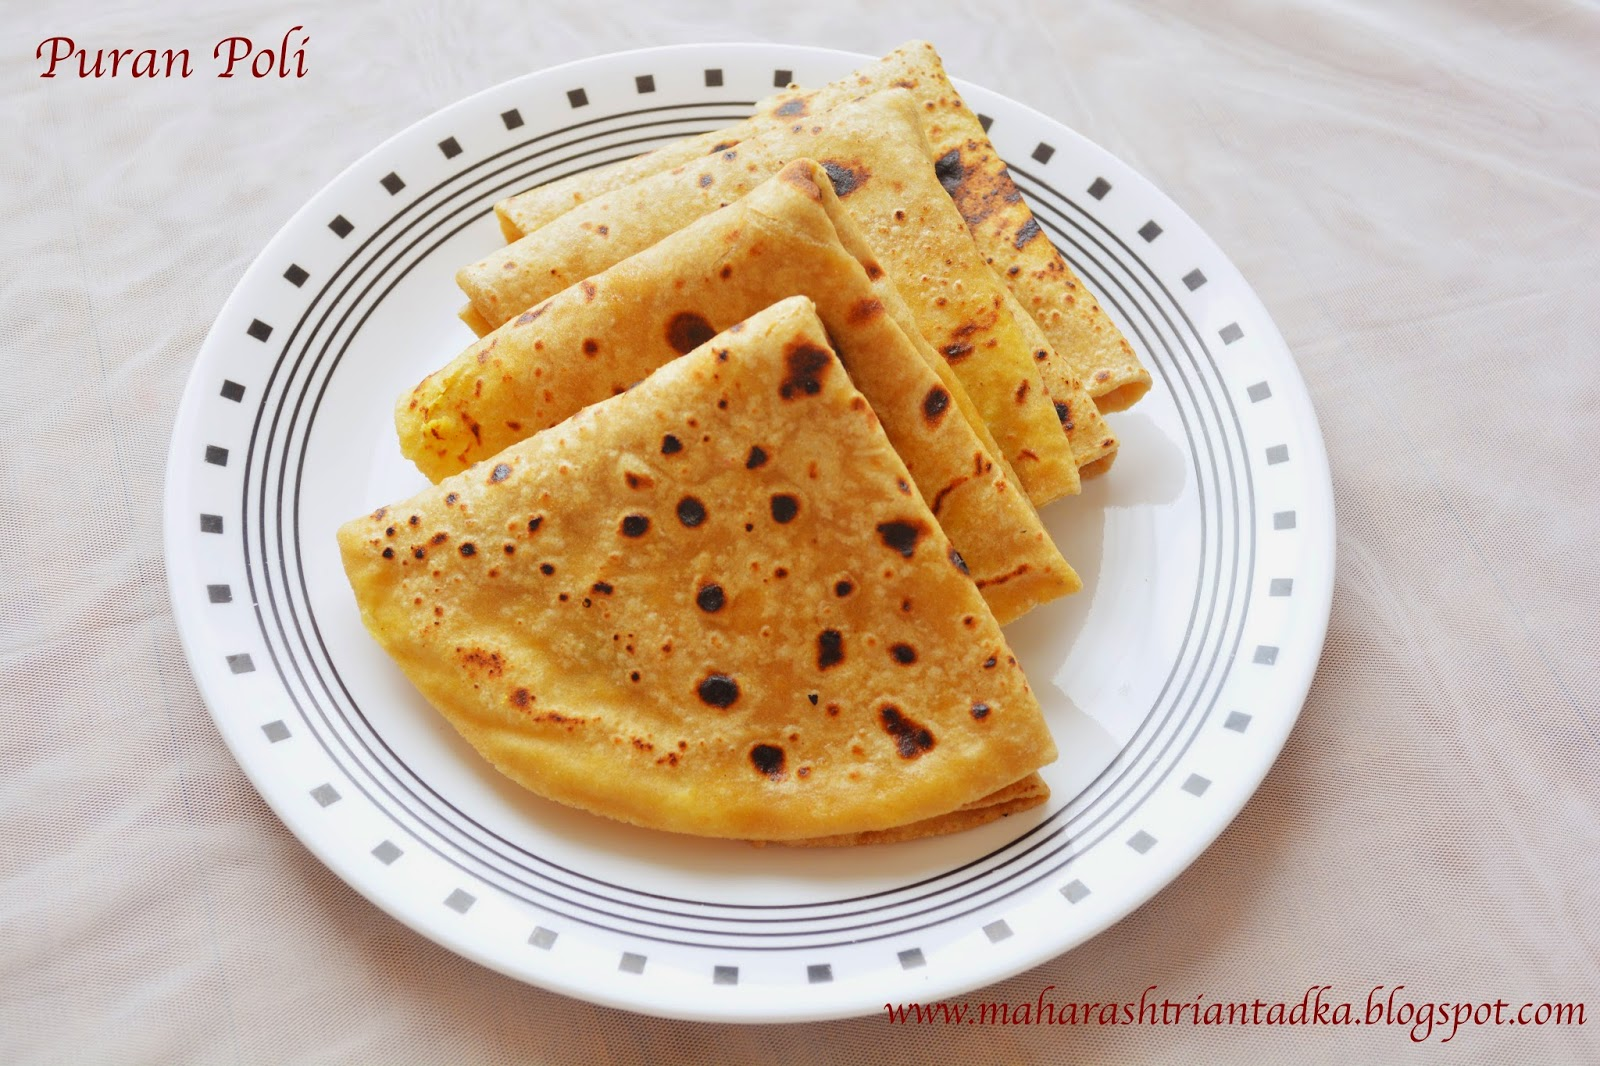 Puran Poli Is A Classical Maharashtrian Dish Look Wise This Traditional Sweet Is Similar To Roti But The Preparation Is Entirely Different